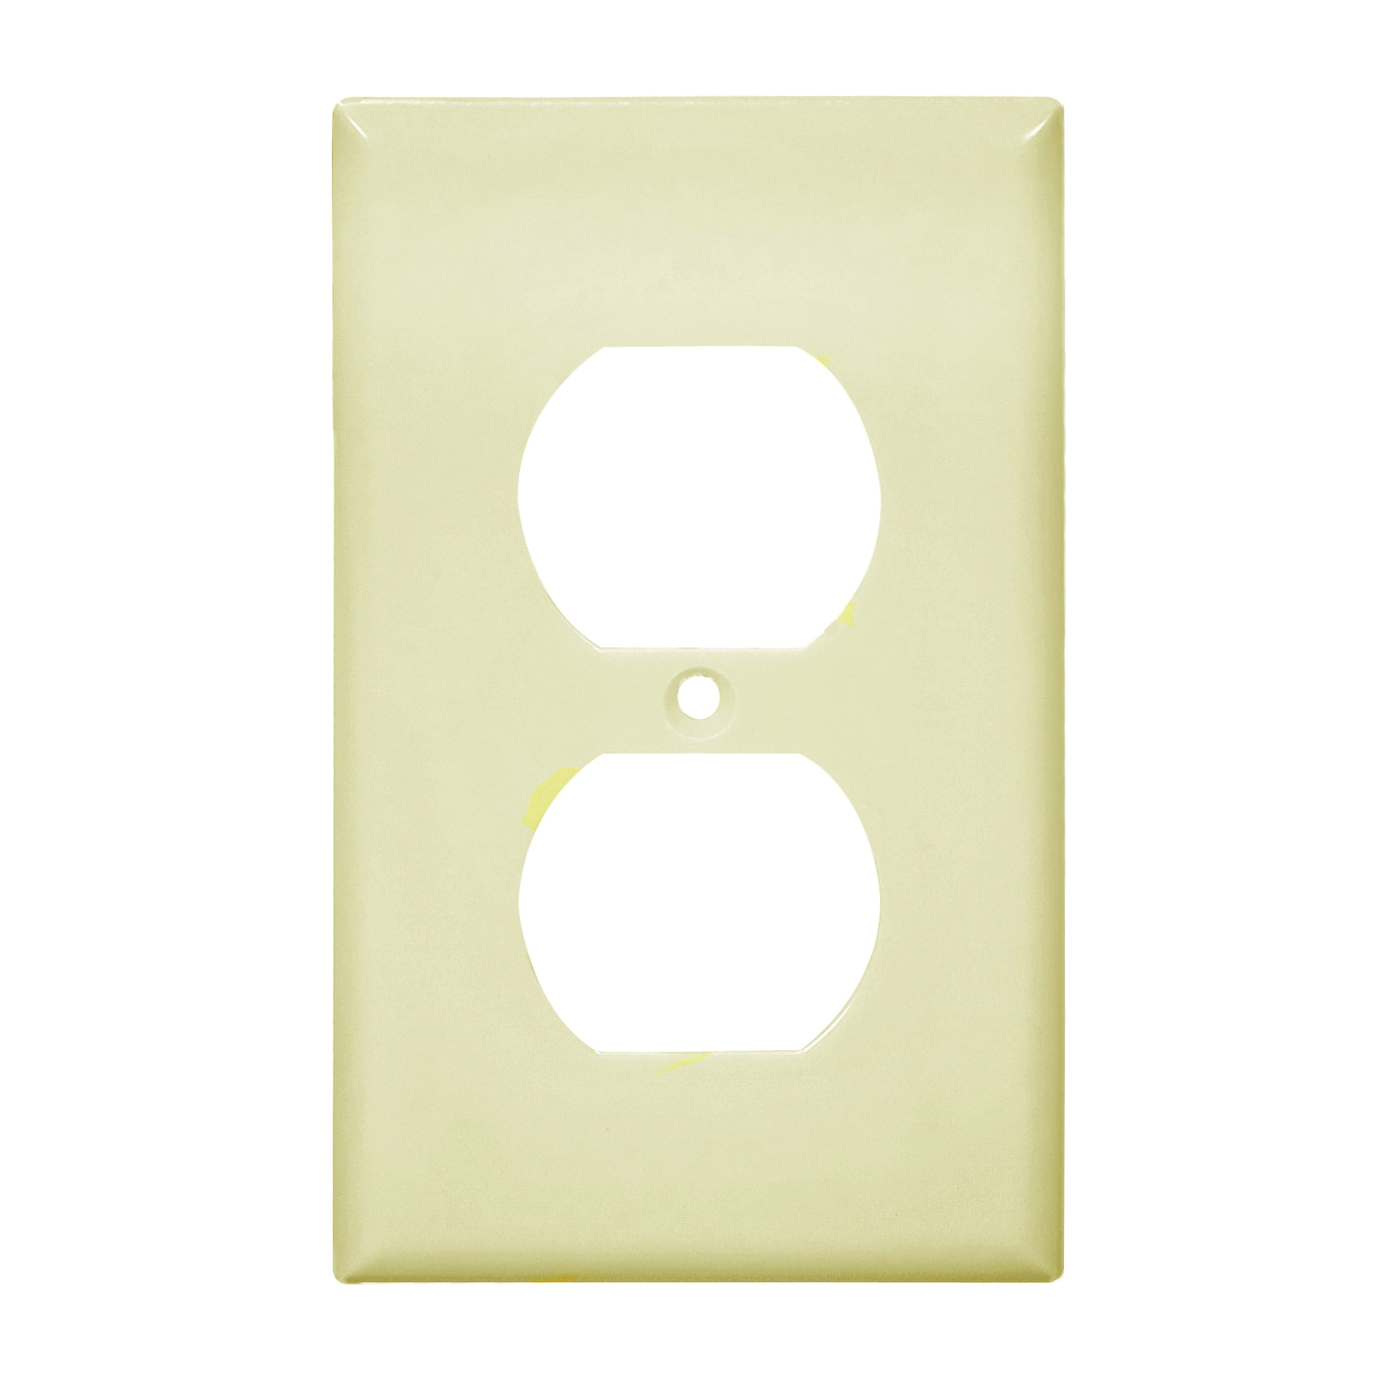 Picture of Eaton Wiring Devices 2132V Wallplate, 4-1/2 in L, 2-3/4 in W, 1-Gang, Thermoset, Ivory, High-Gloss